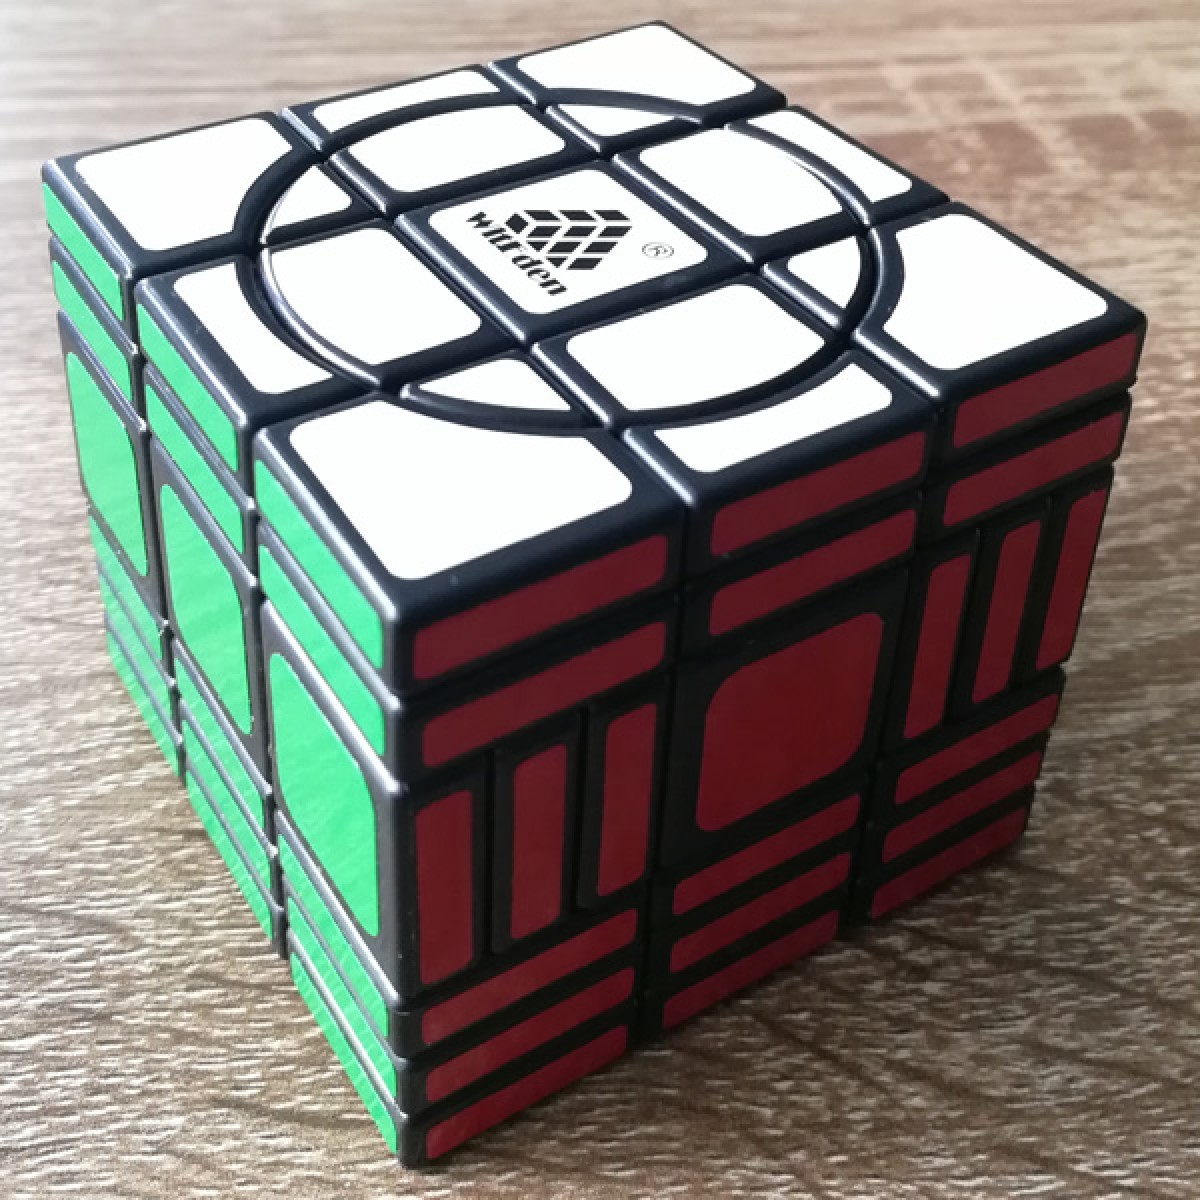 WitEden Super 3x3x6 II Magic Cube